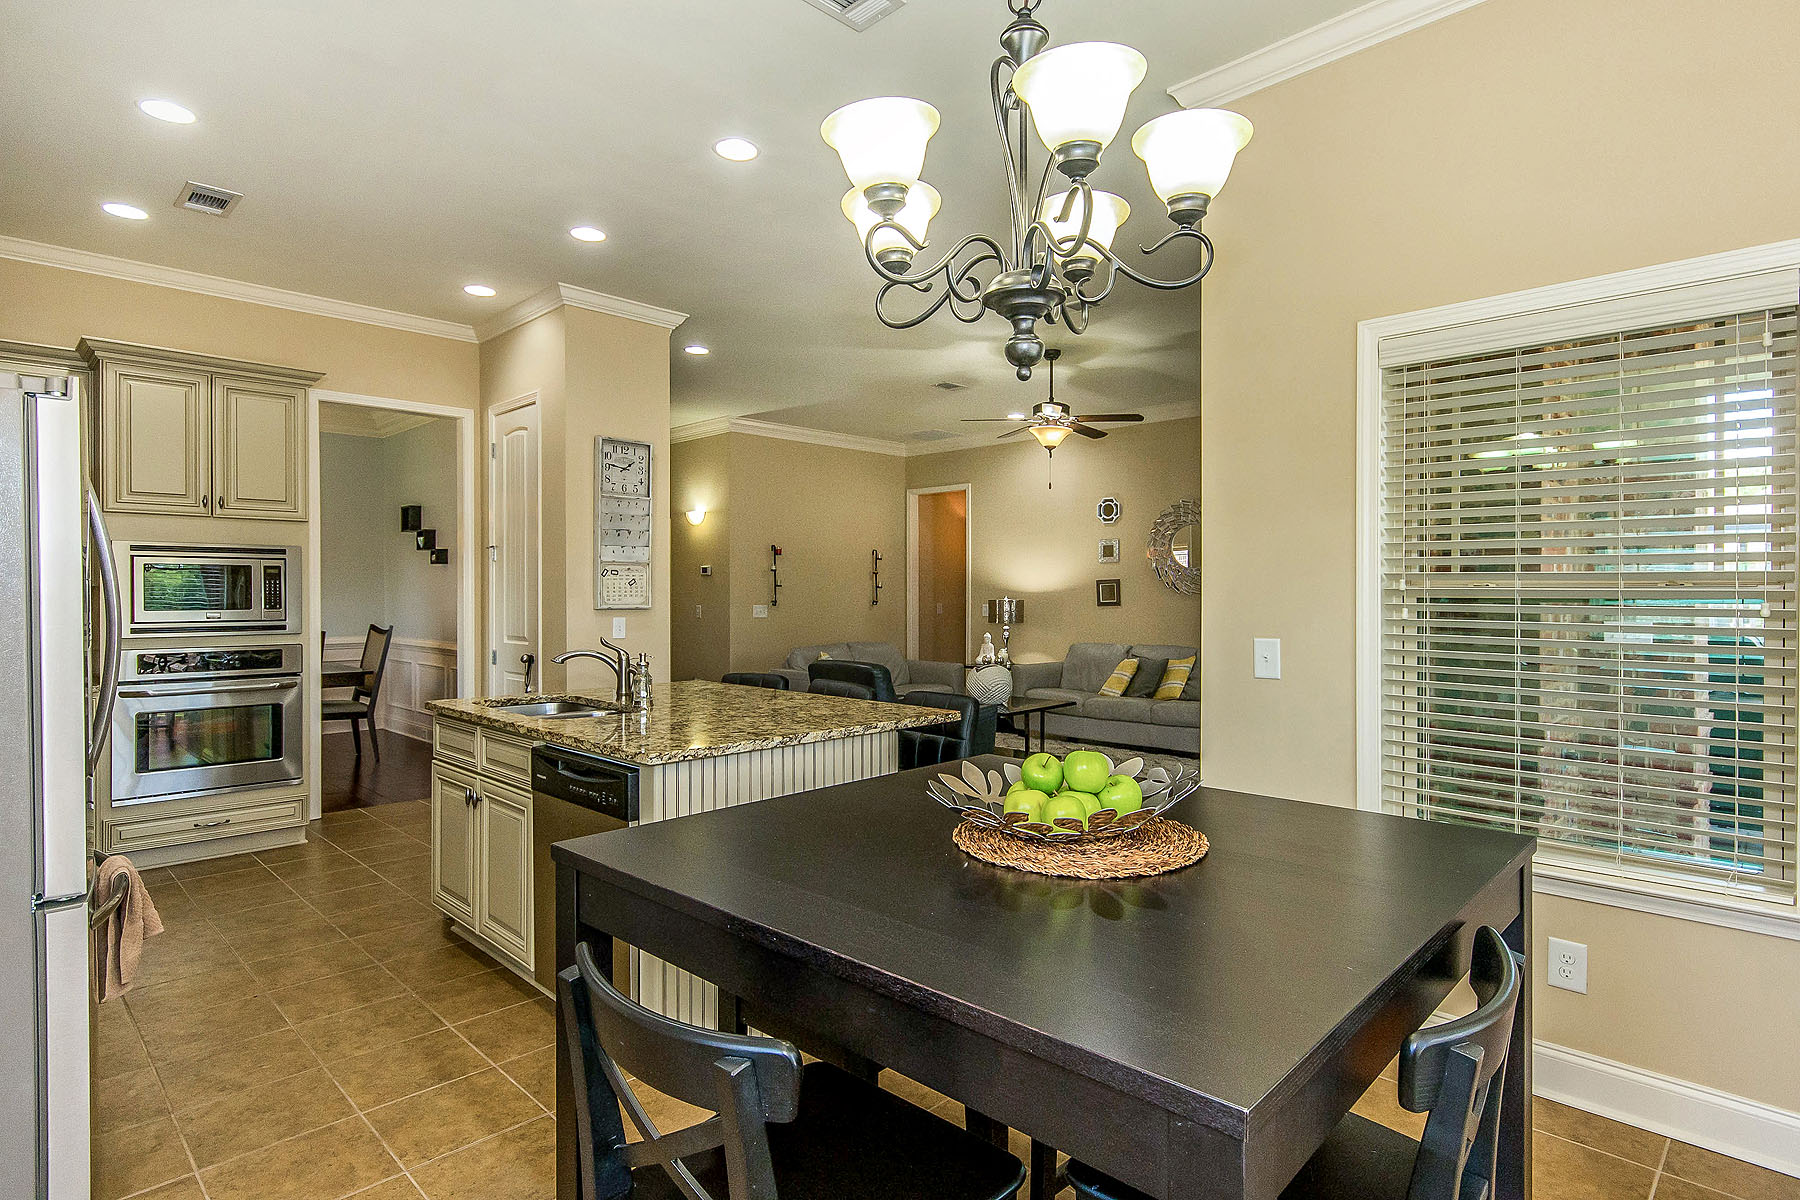 Pike Road AL homes for sale 440 New Providence Way virtual tour